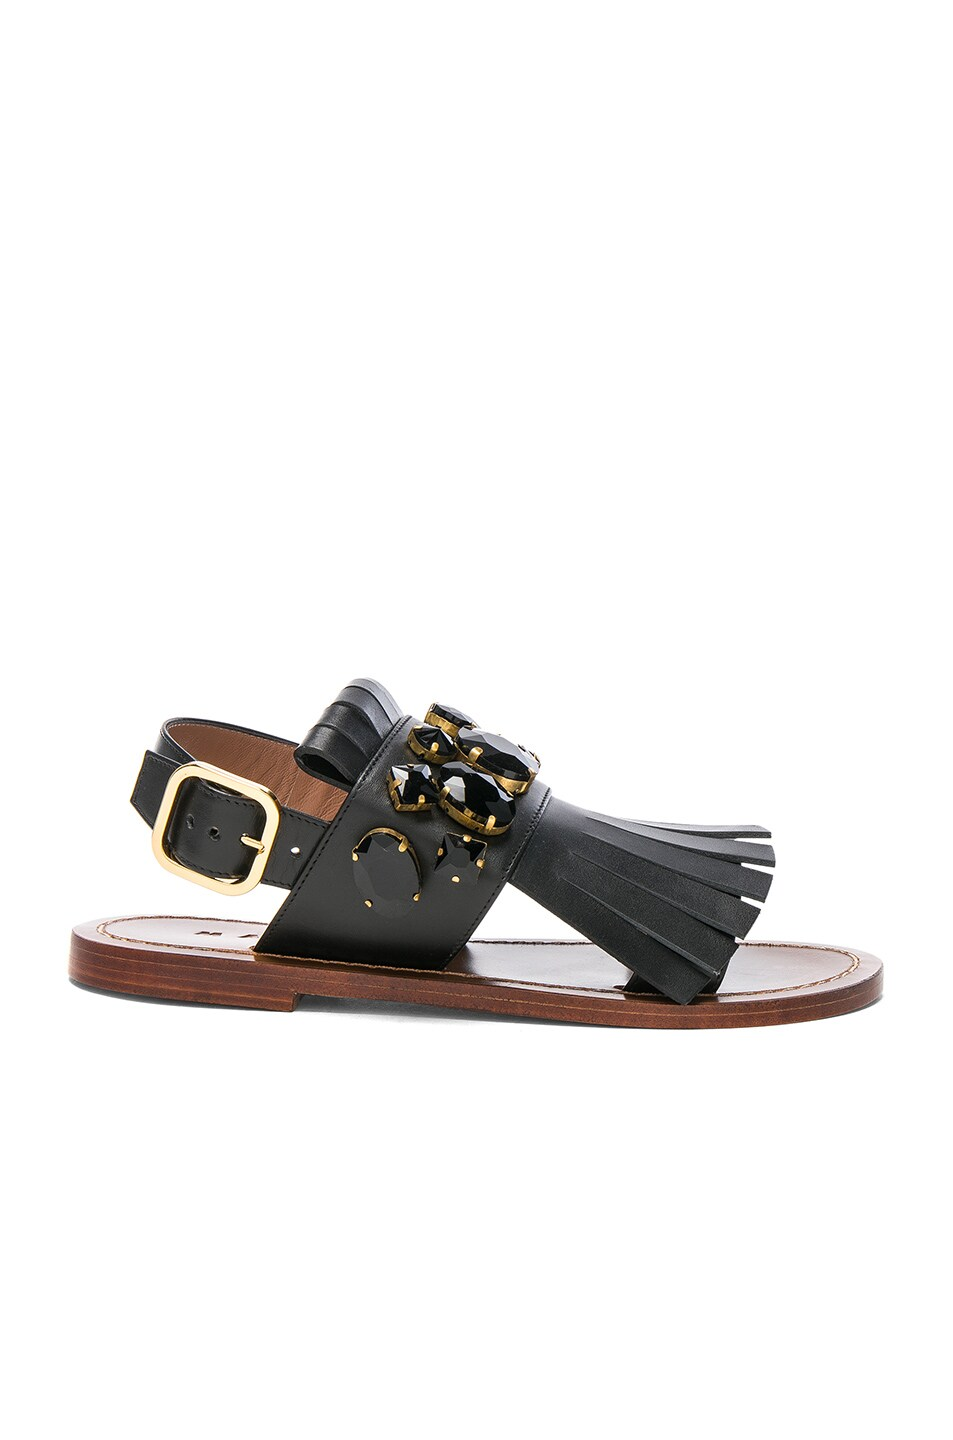 Image 1 of Marni Jewel Leather Sandals in Black